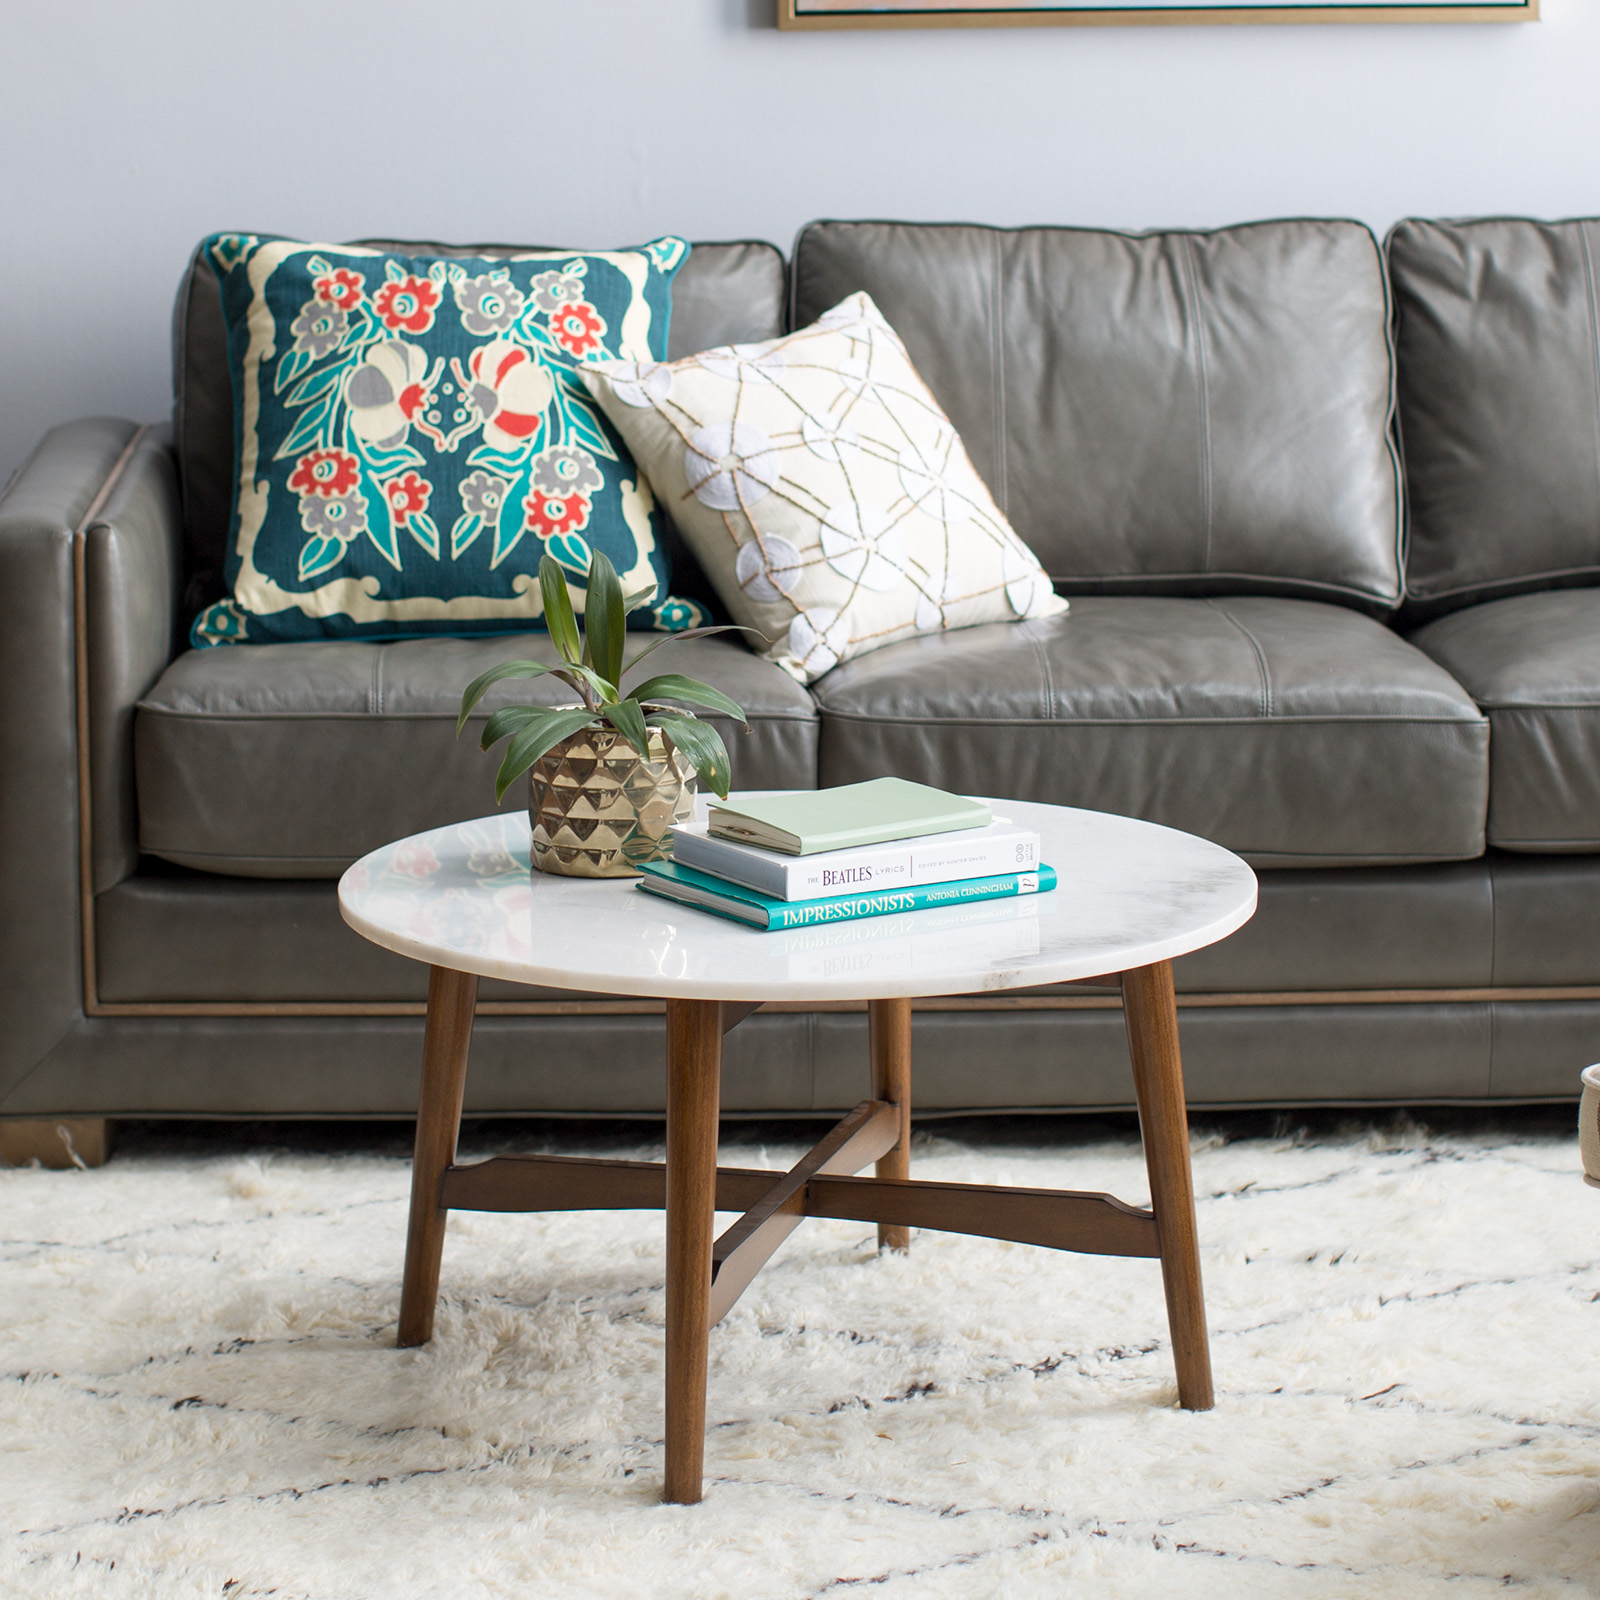 QUICK VIEW. Belham Living James Round Mid Century Modern Marble Coffee Table.  $299.99. Free Shipping Part 78